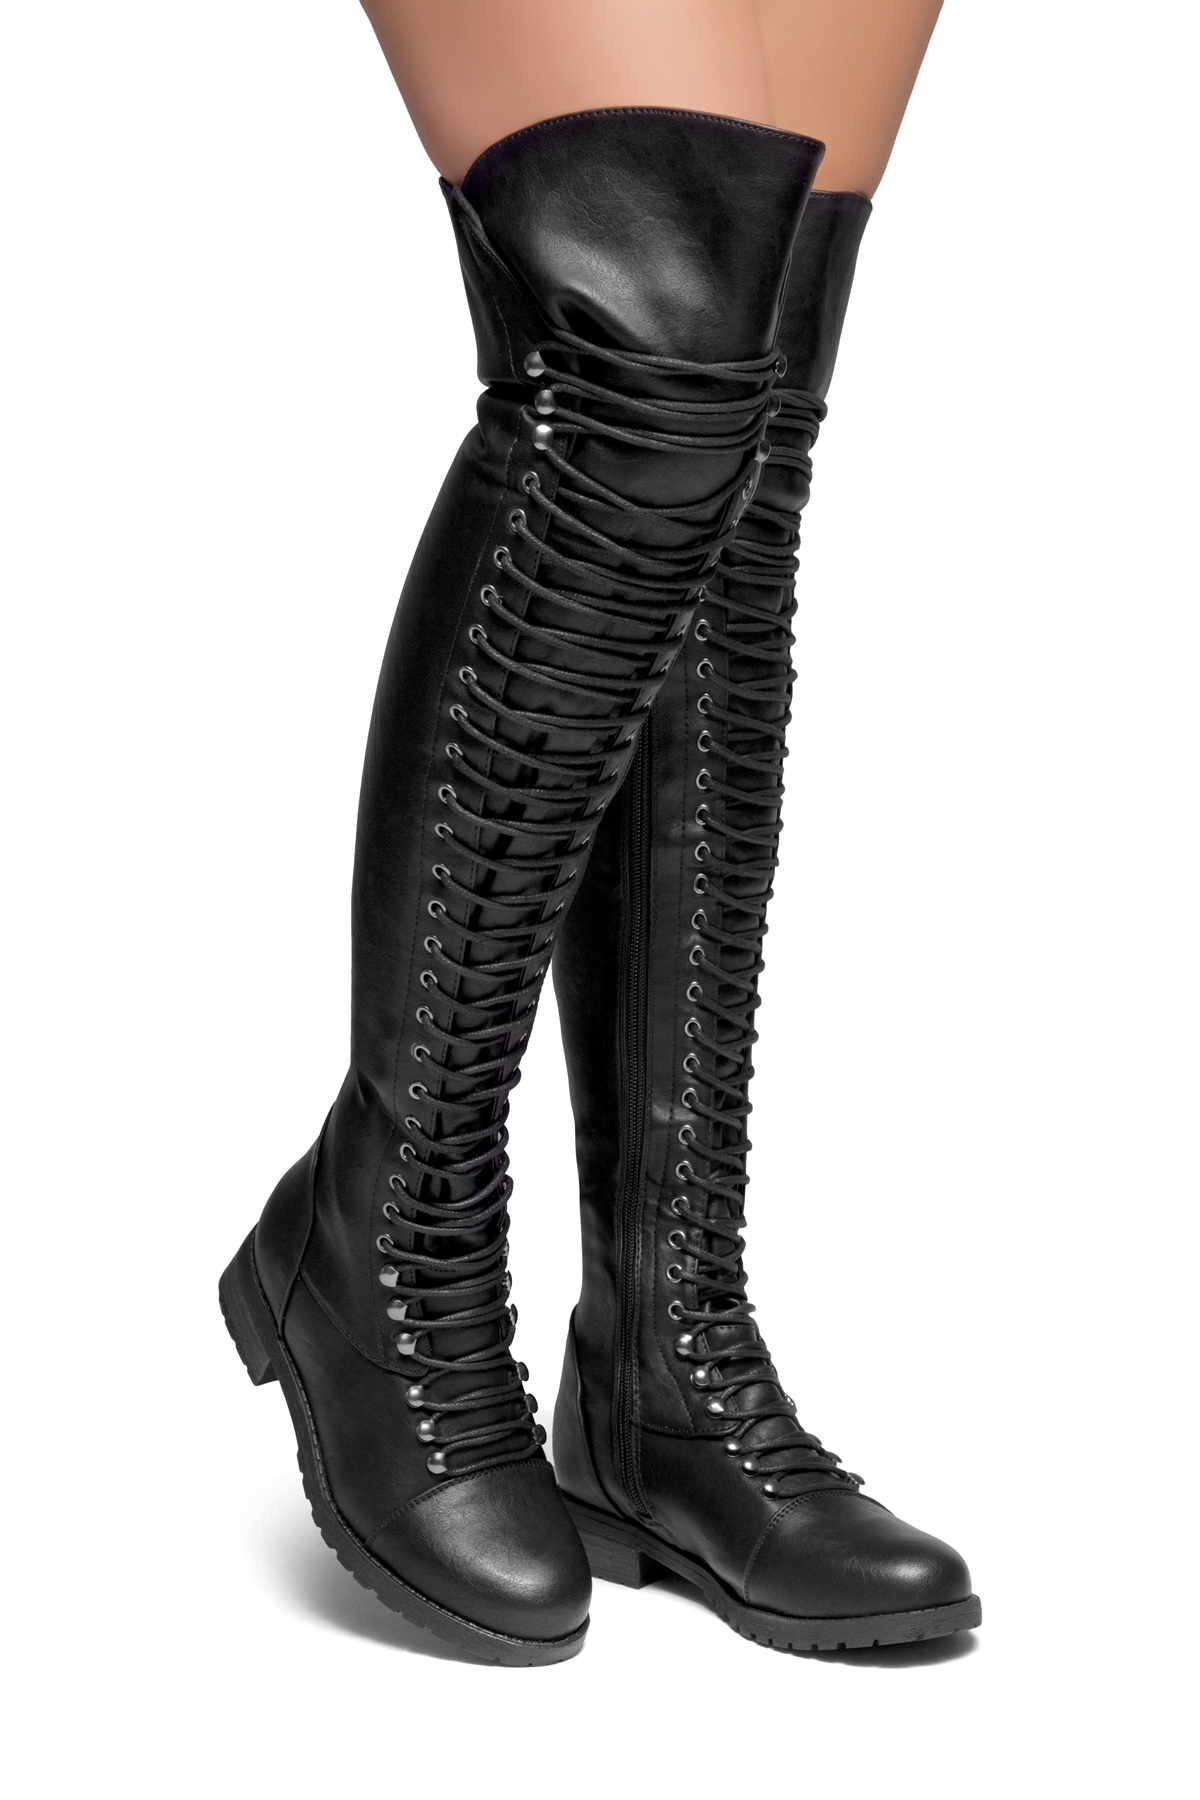 3f3f8507a15 HerStyle Kristrrina-Combat Lace up Over-The-Knee Boots(Black)